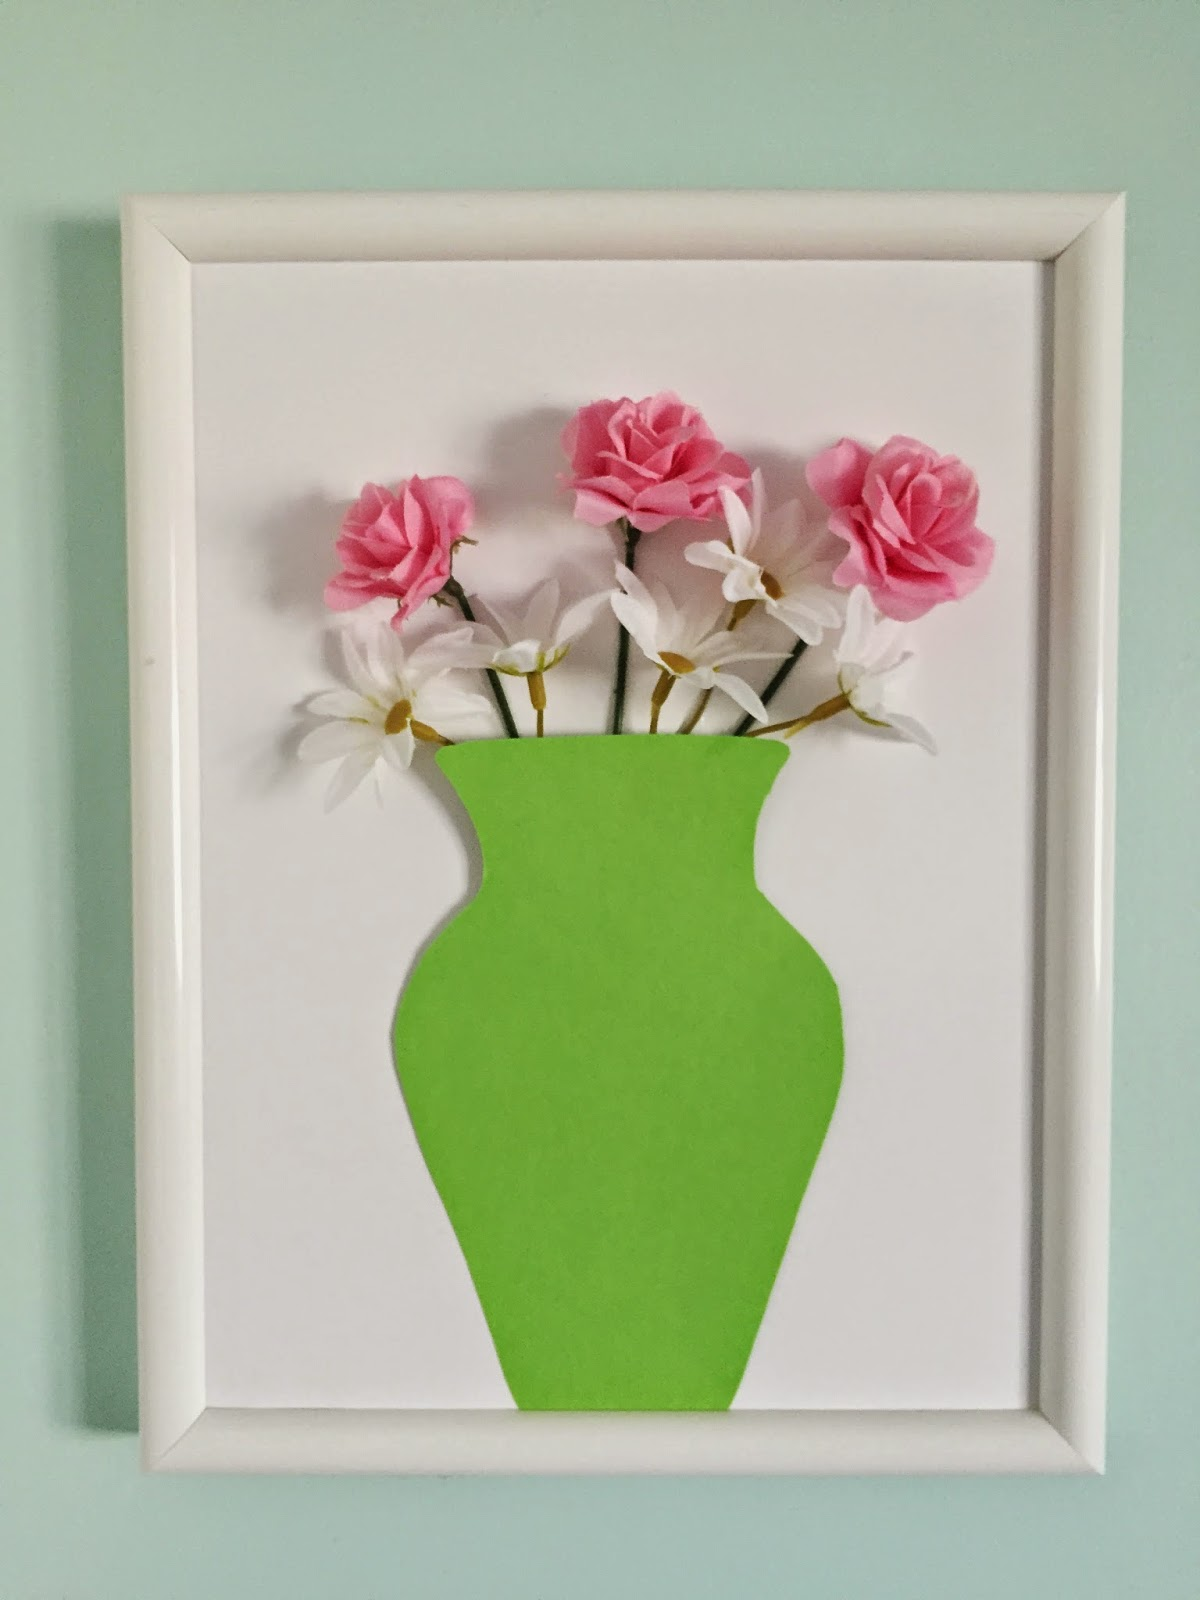 Diy Spring Wall Decor : Diy d spring wall decor the monogrammed life